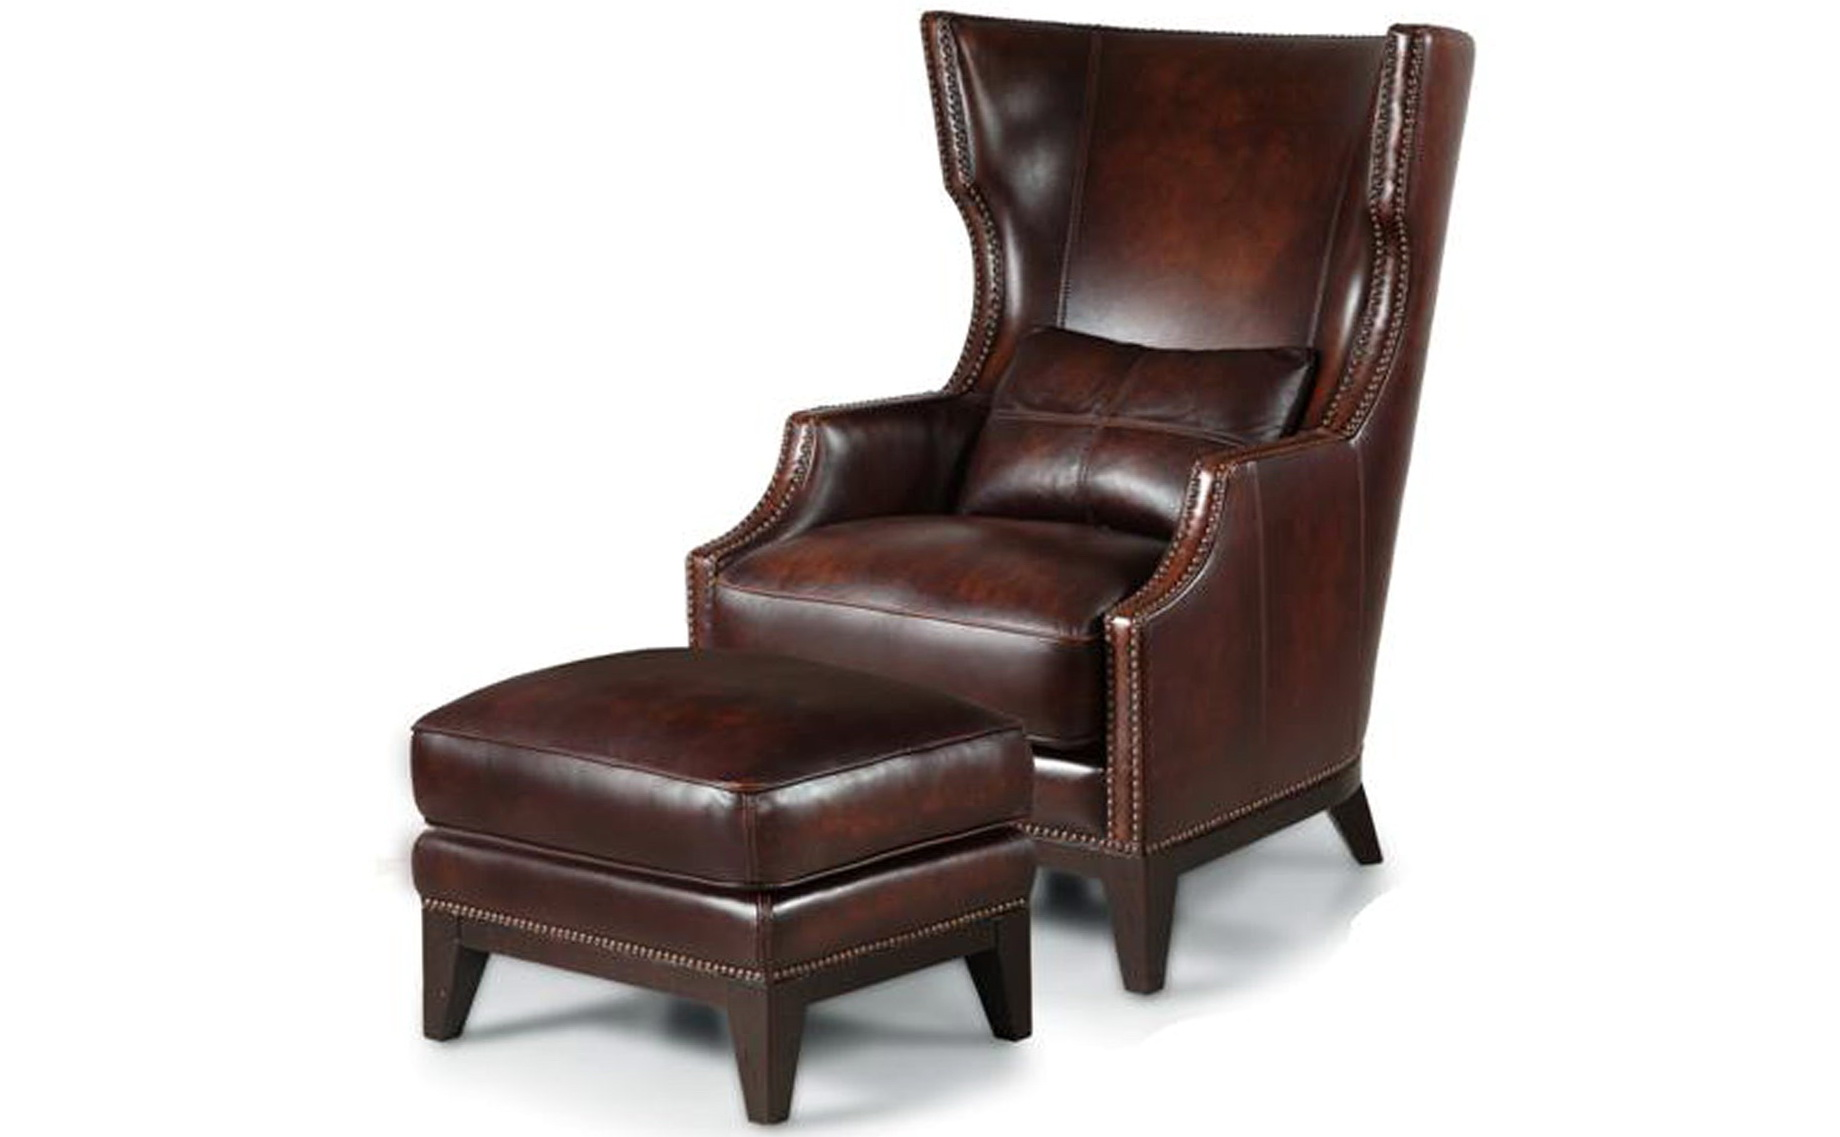 Charmant High Back Leather Chair With Ottoman